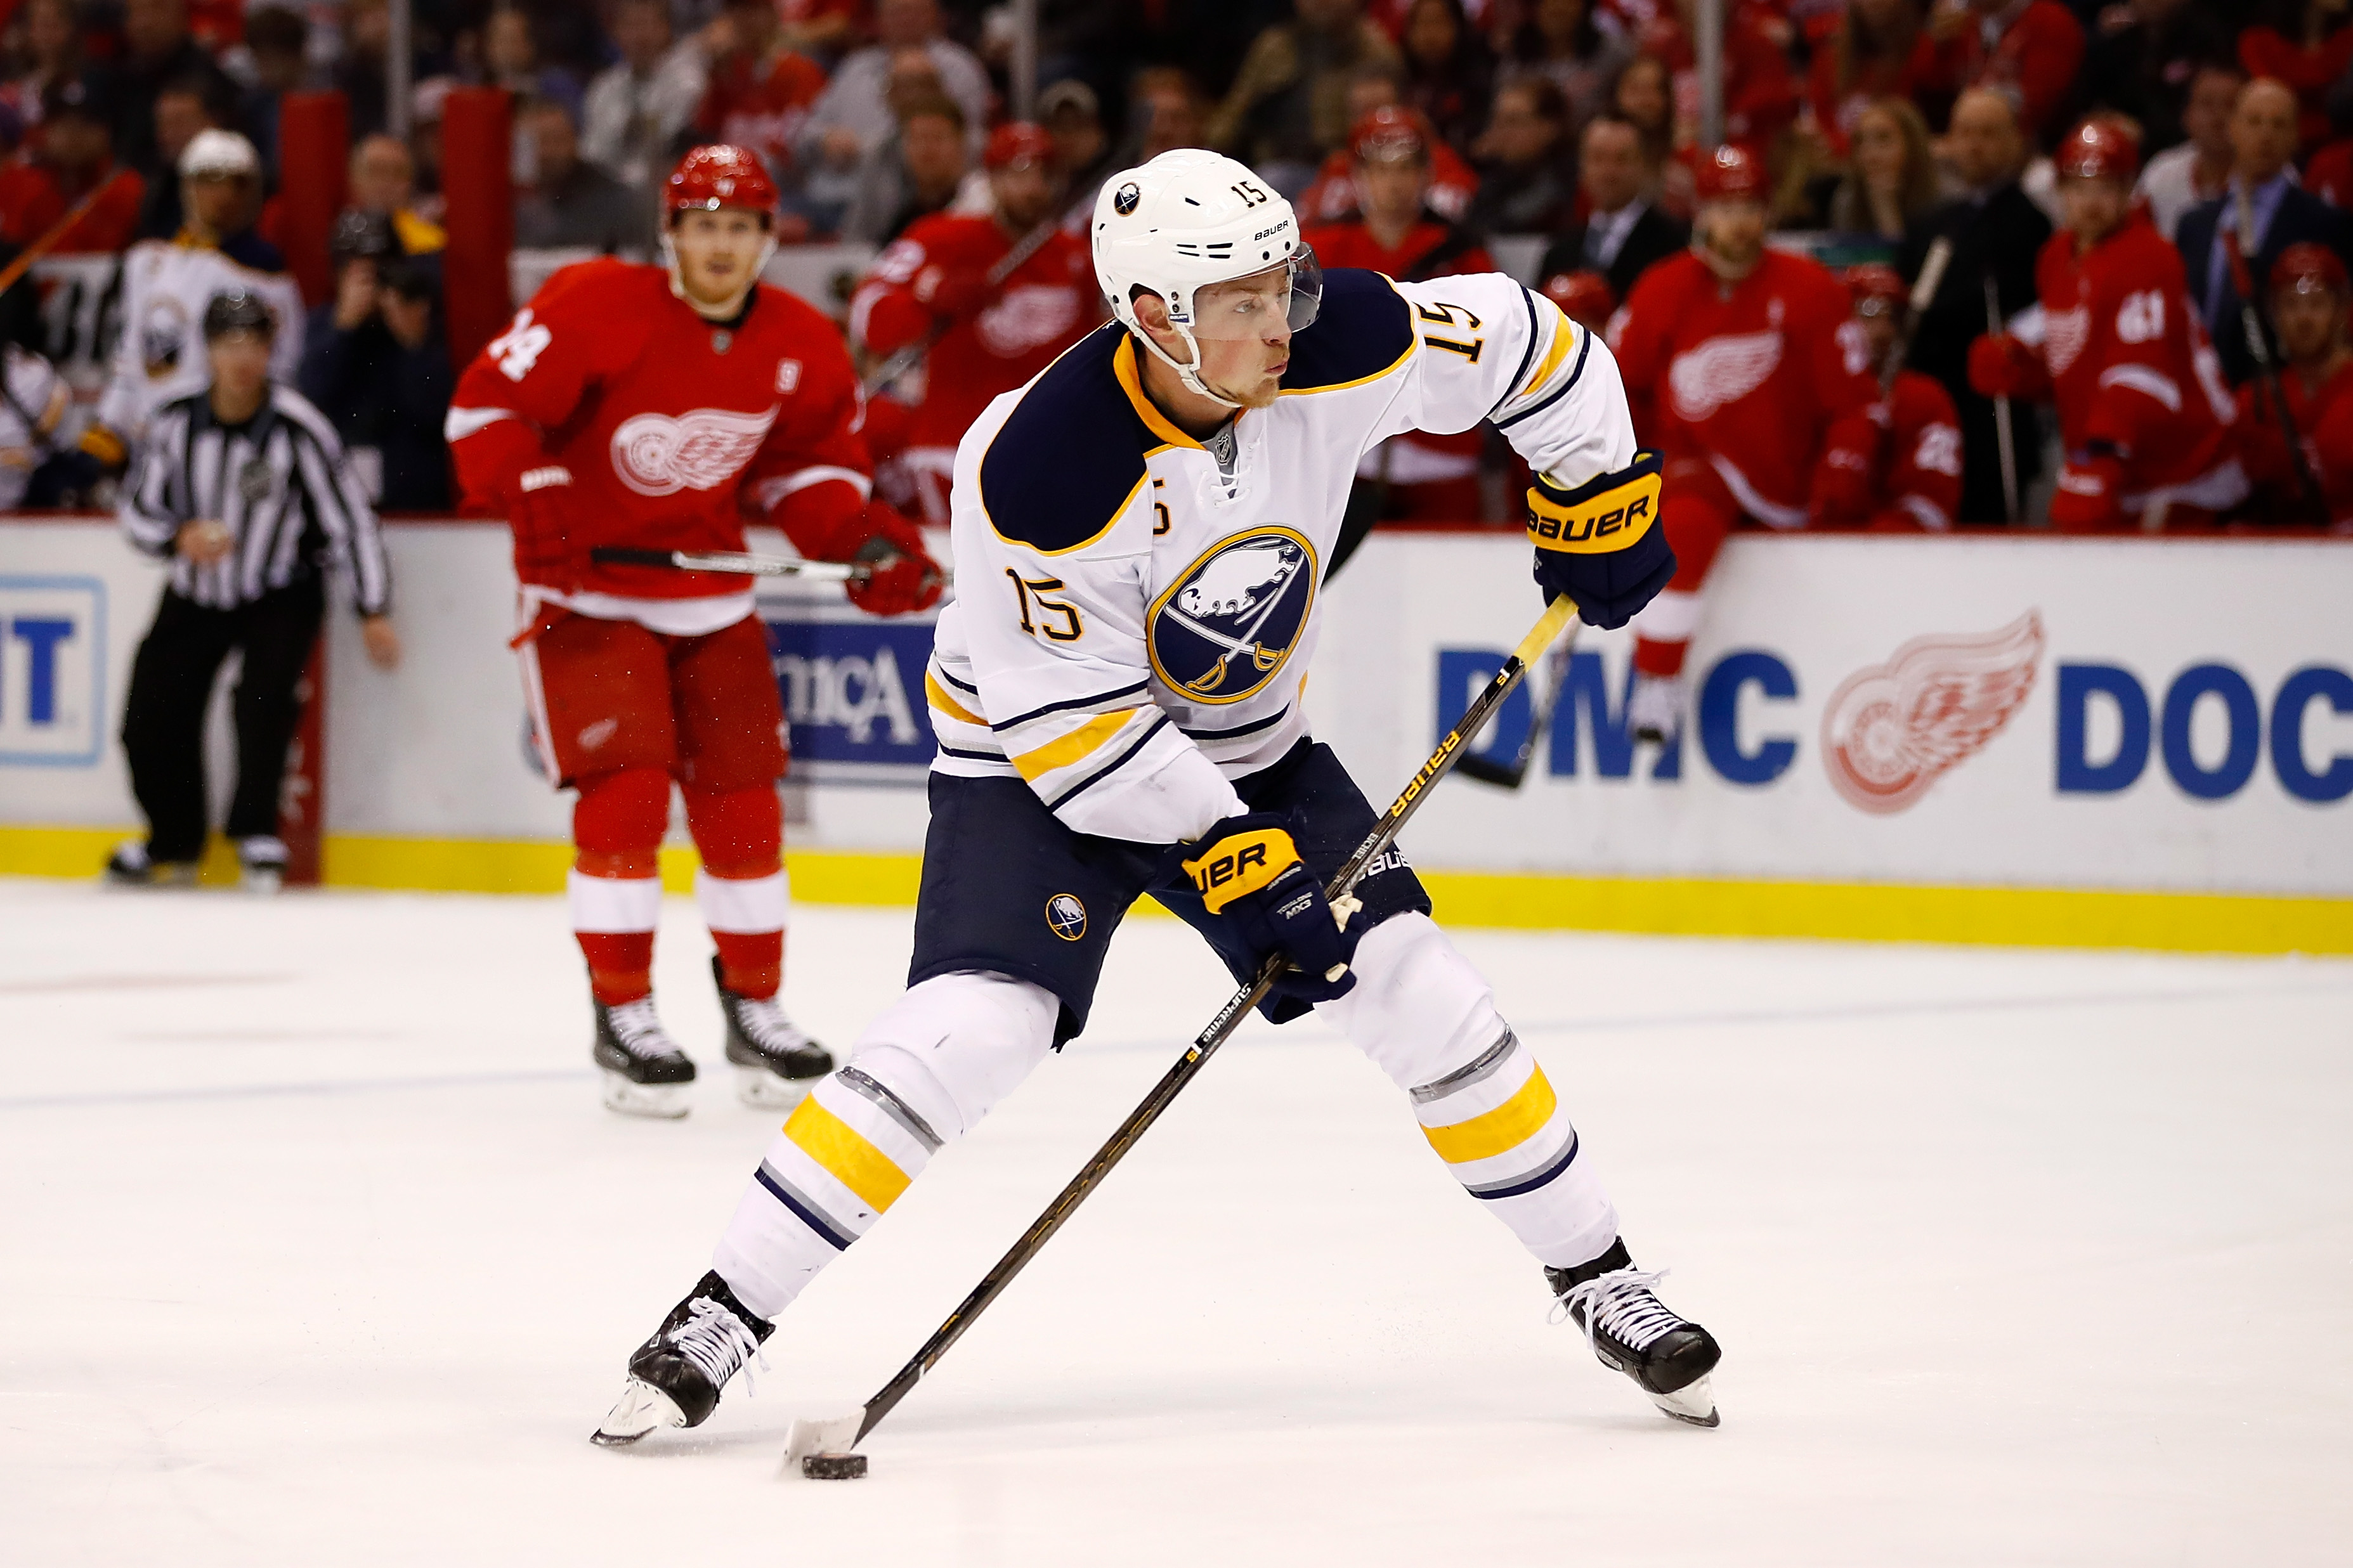 Jack Eichel says the Sabres can't blame their scoring problems on injuries. (Getty Images)